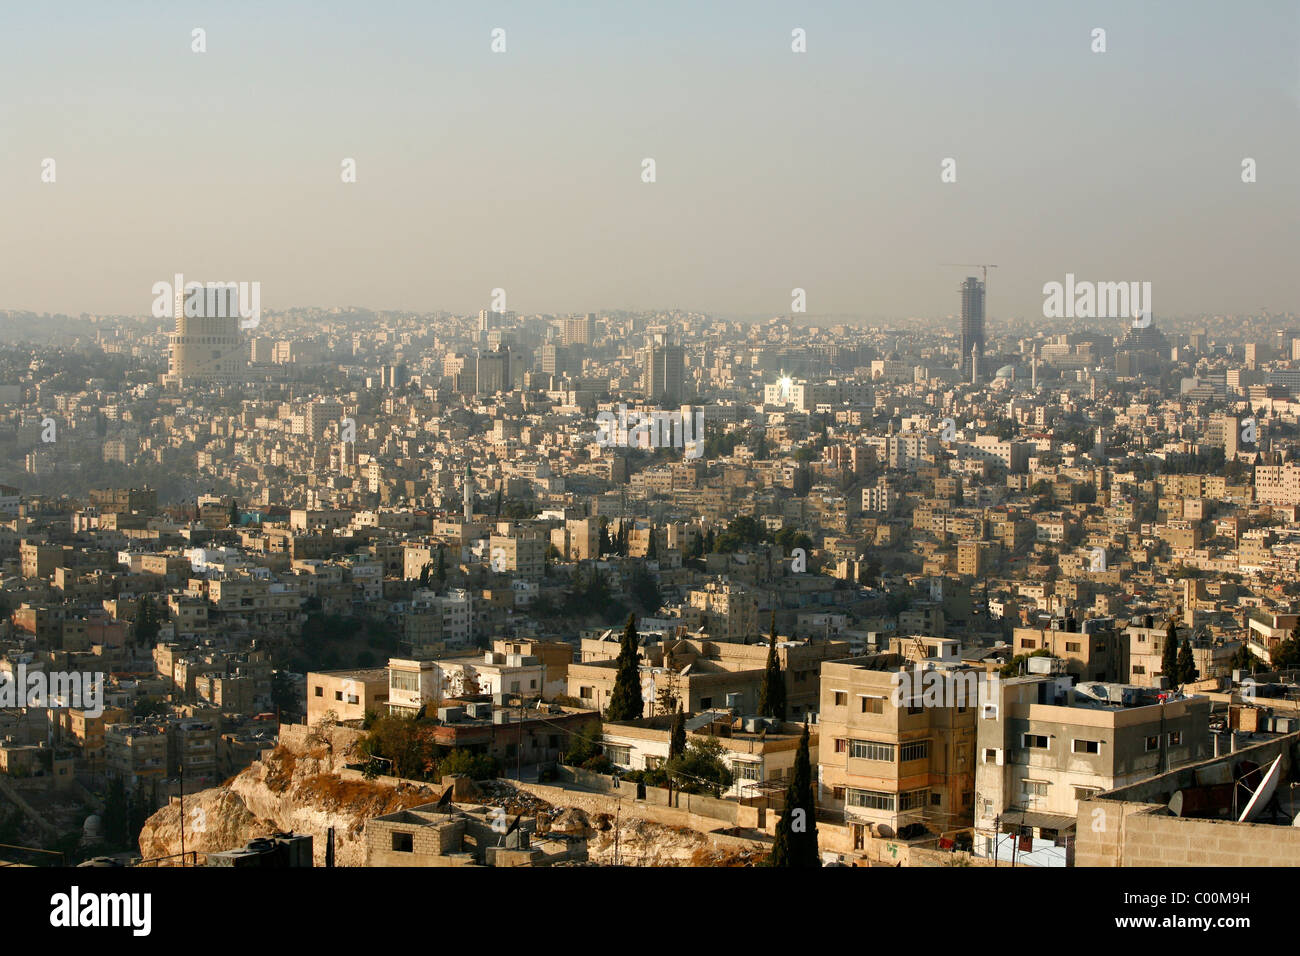 Toits de Amman, Amman, Jordanie. Photo Stock